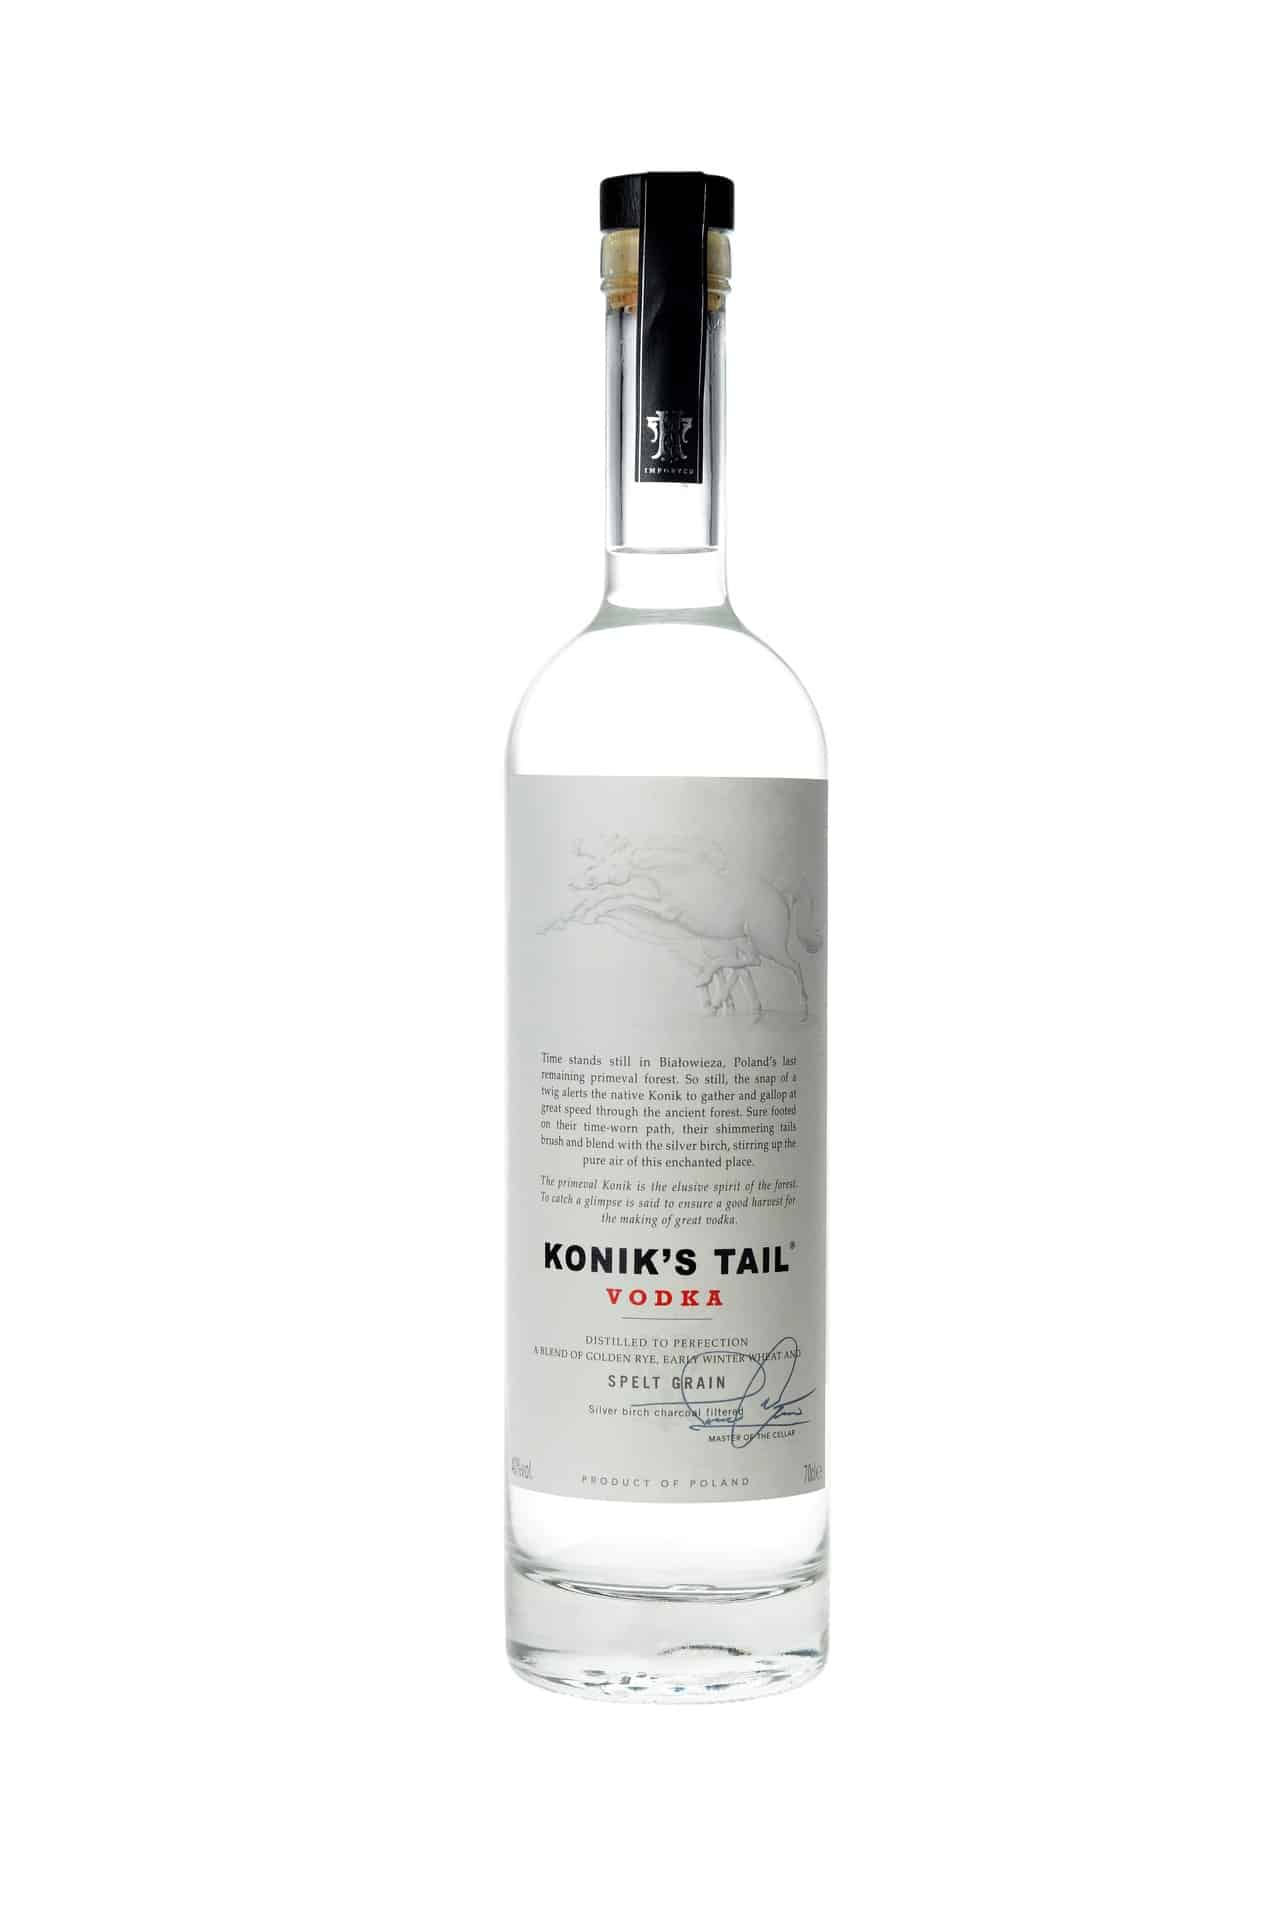 Koninks Tail Vodka